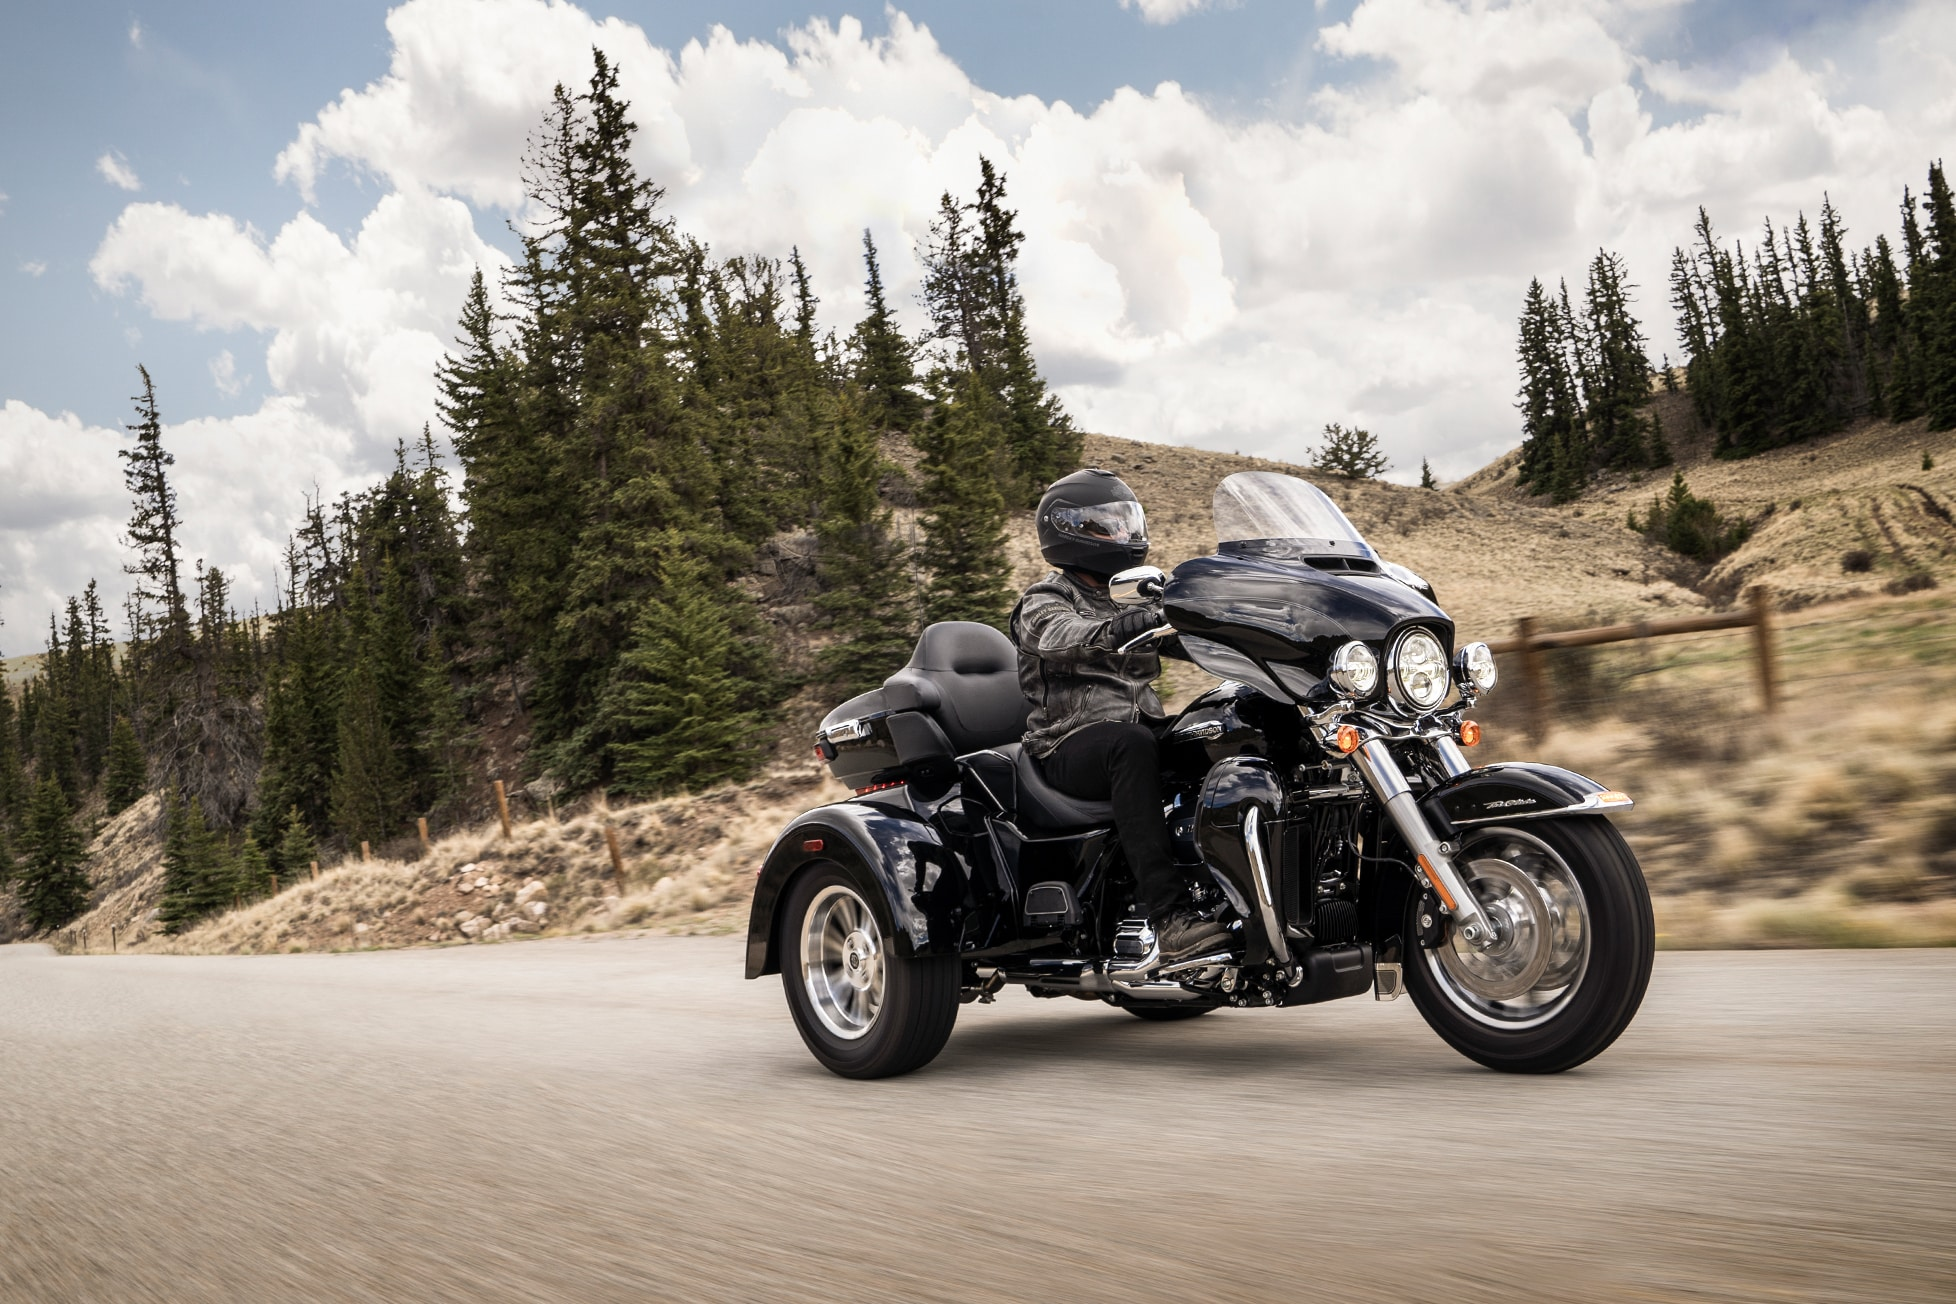 medium resolution of man riding 2019 tri glide ultra motorcycle